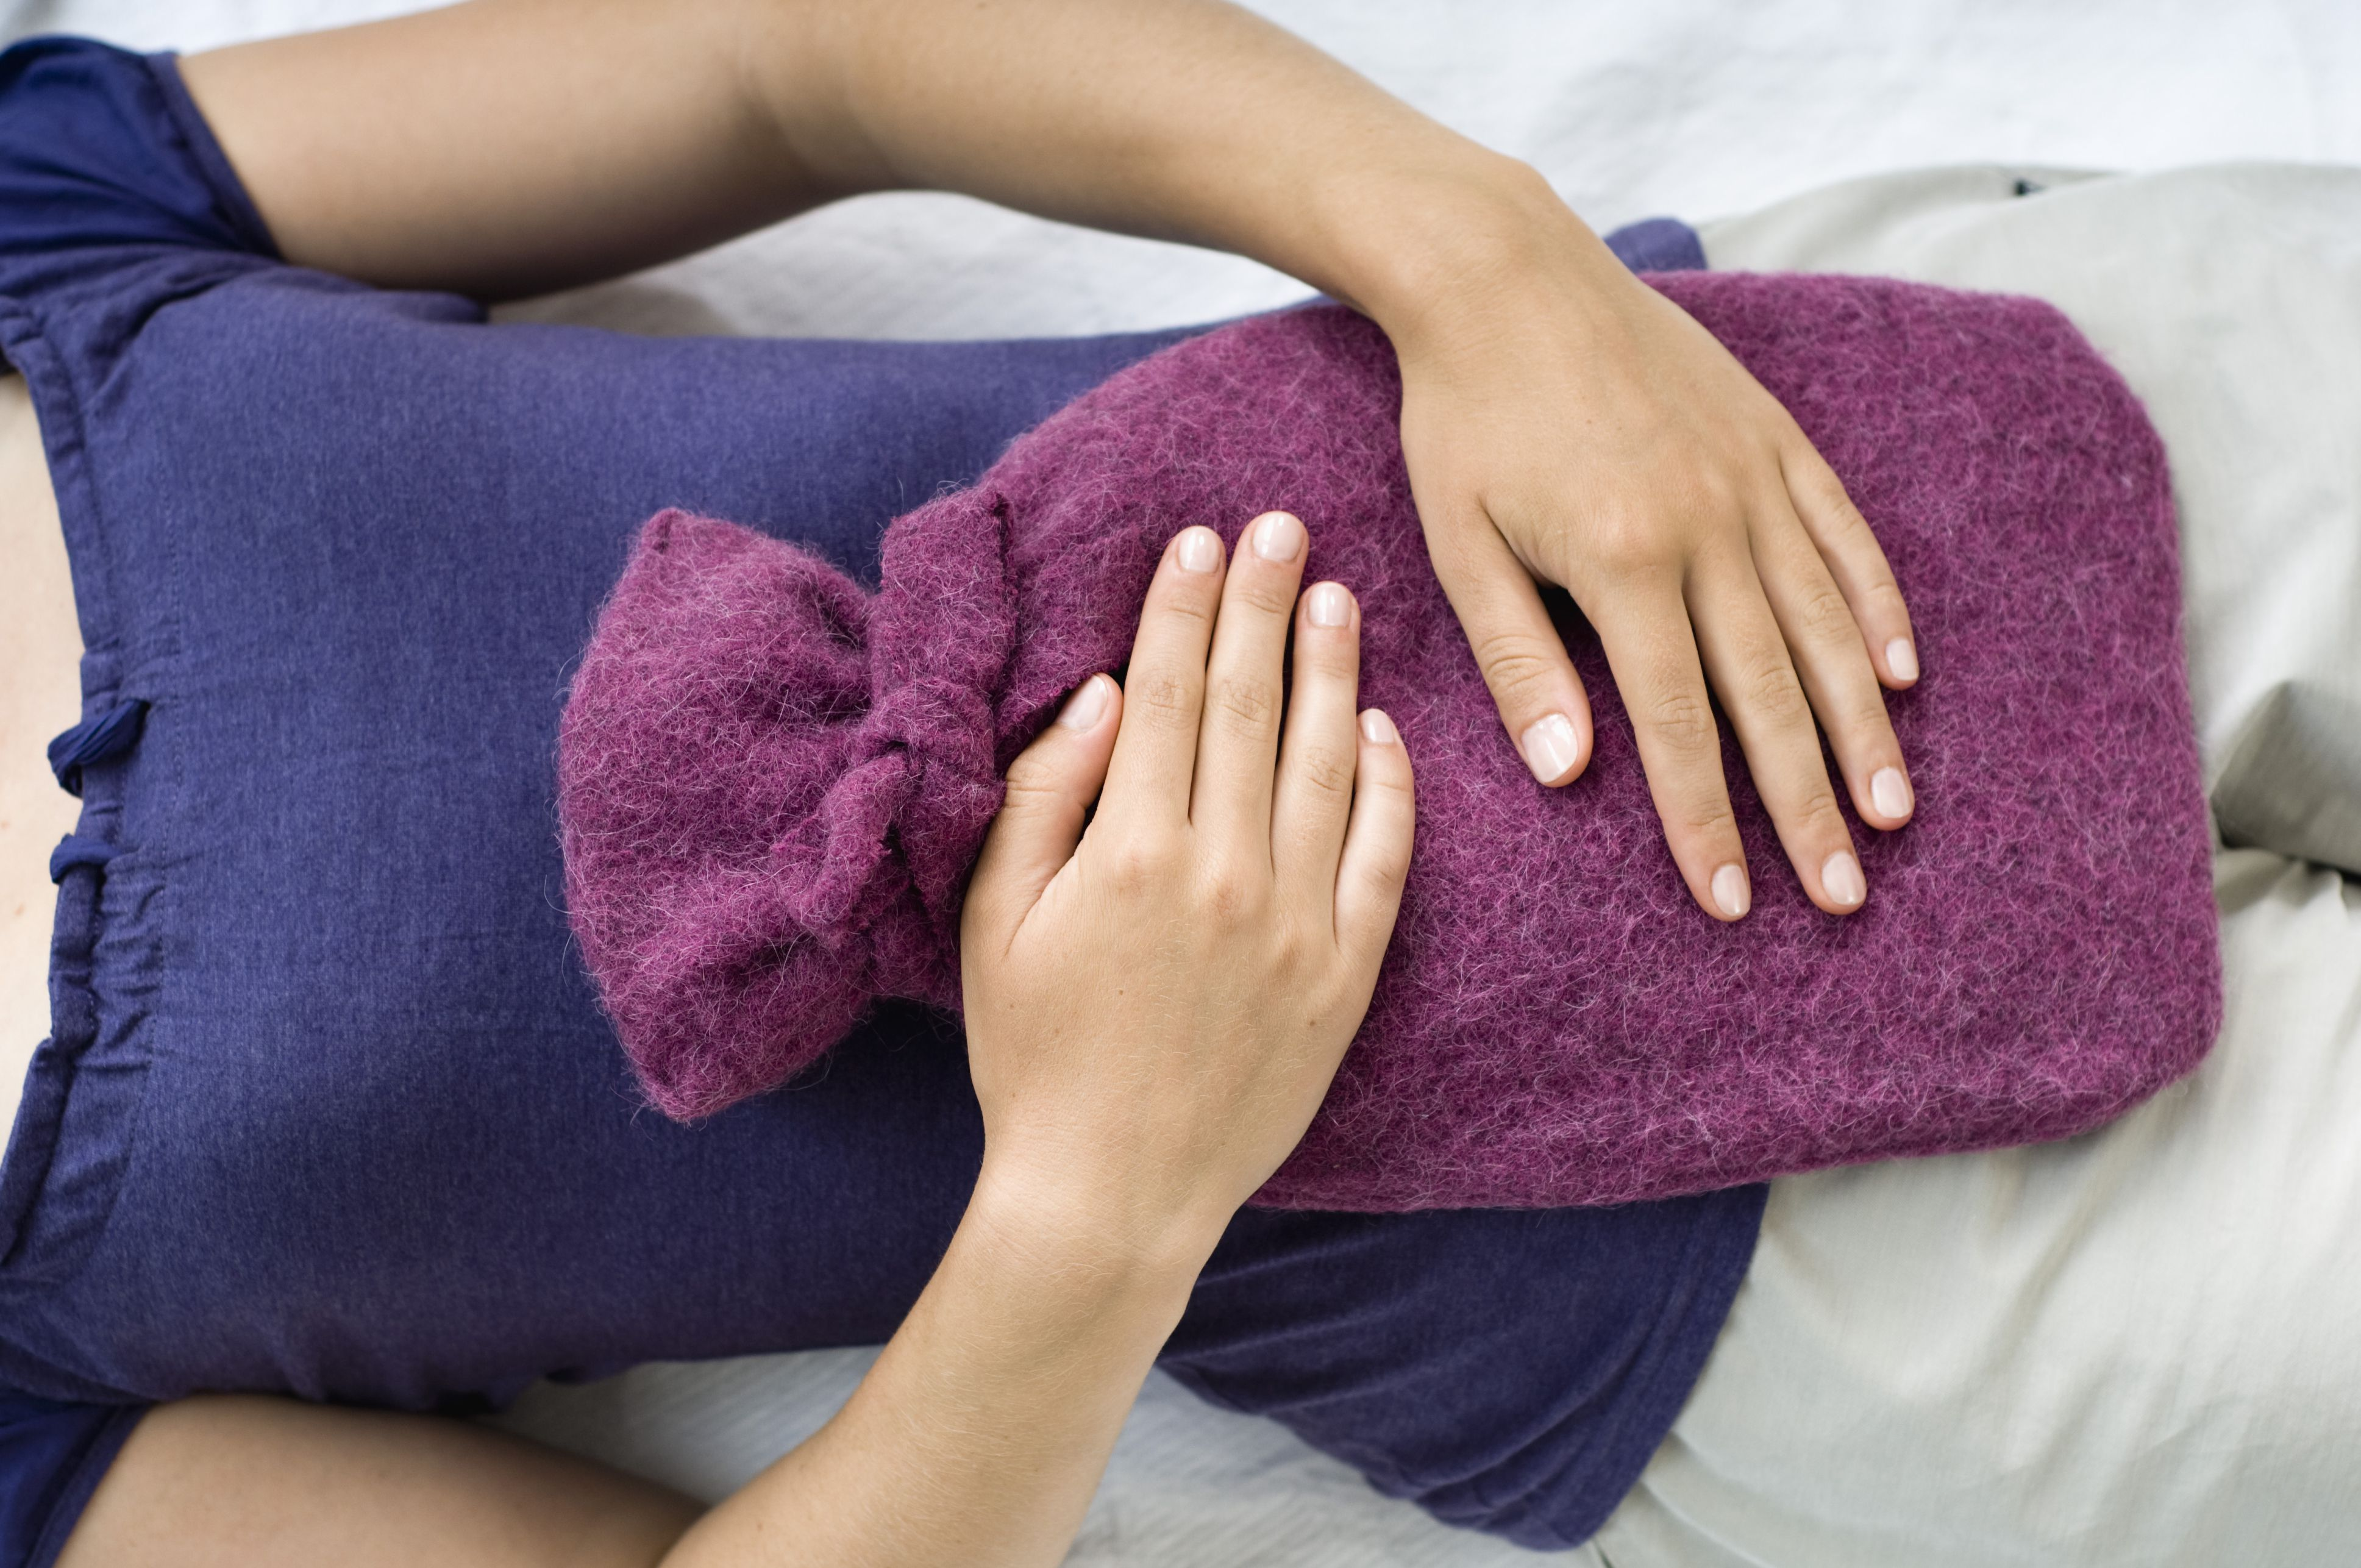 Woman with hot water bottle who has cramps from endometriosis